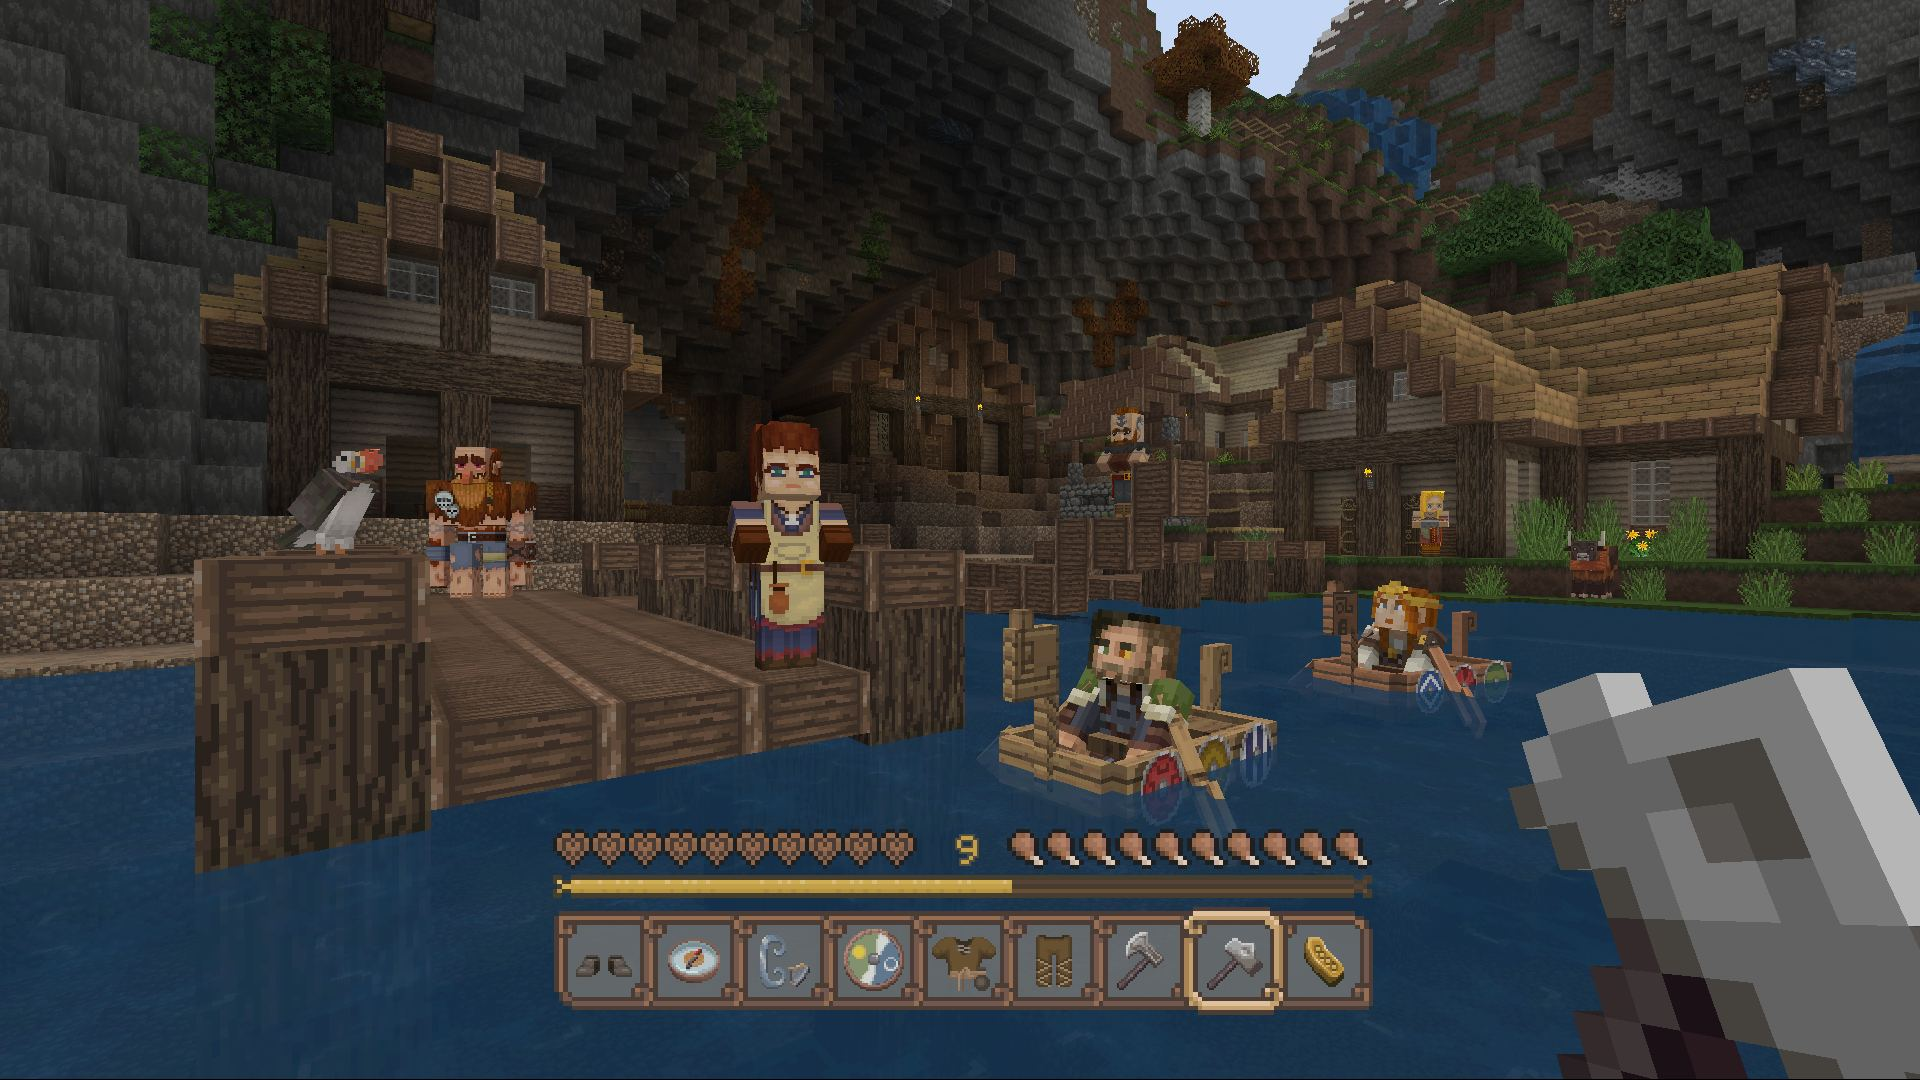 Minecraft Norse Mythology Mashup On PS Official PlayStationStore US - Minecraft star wars spiele kostenlos